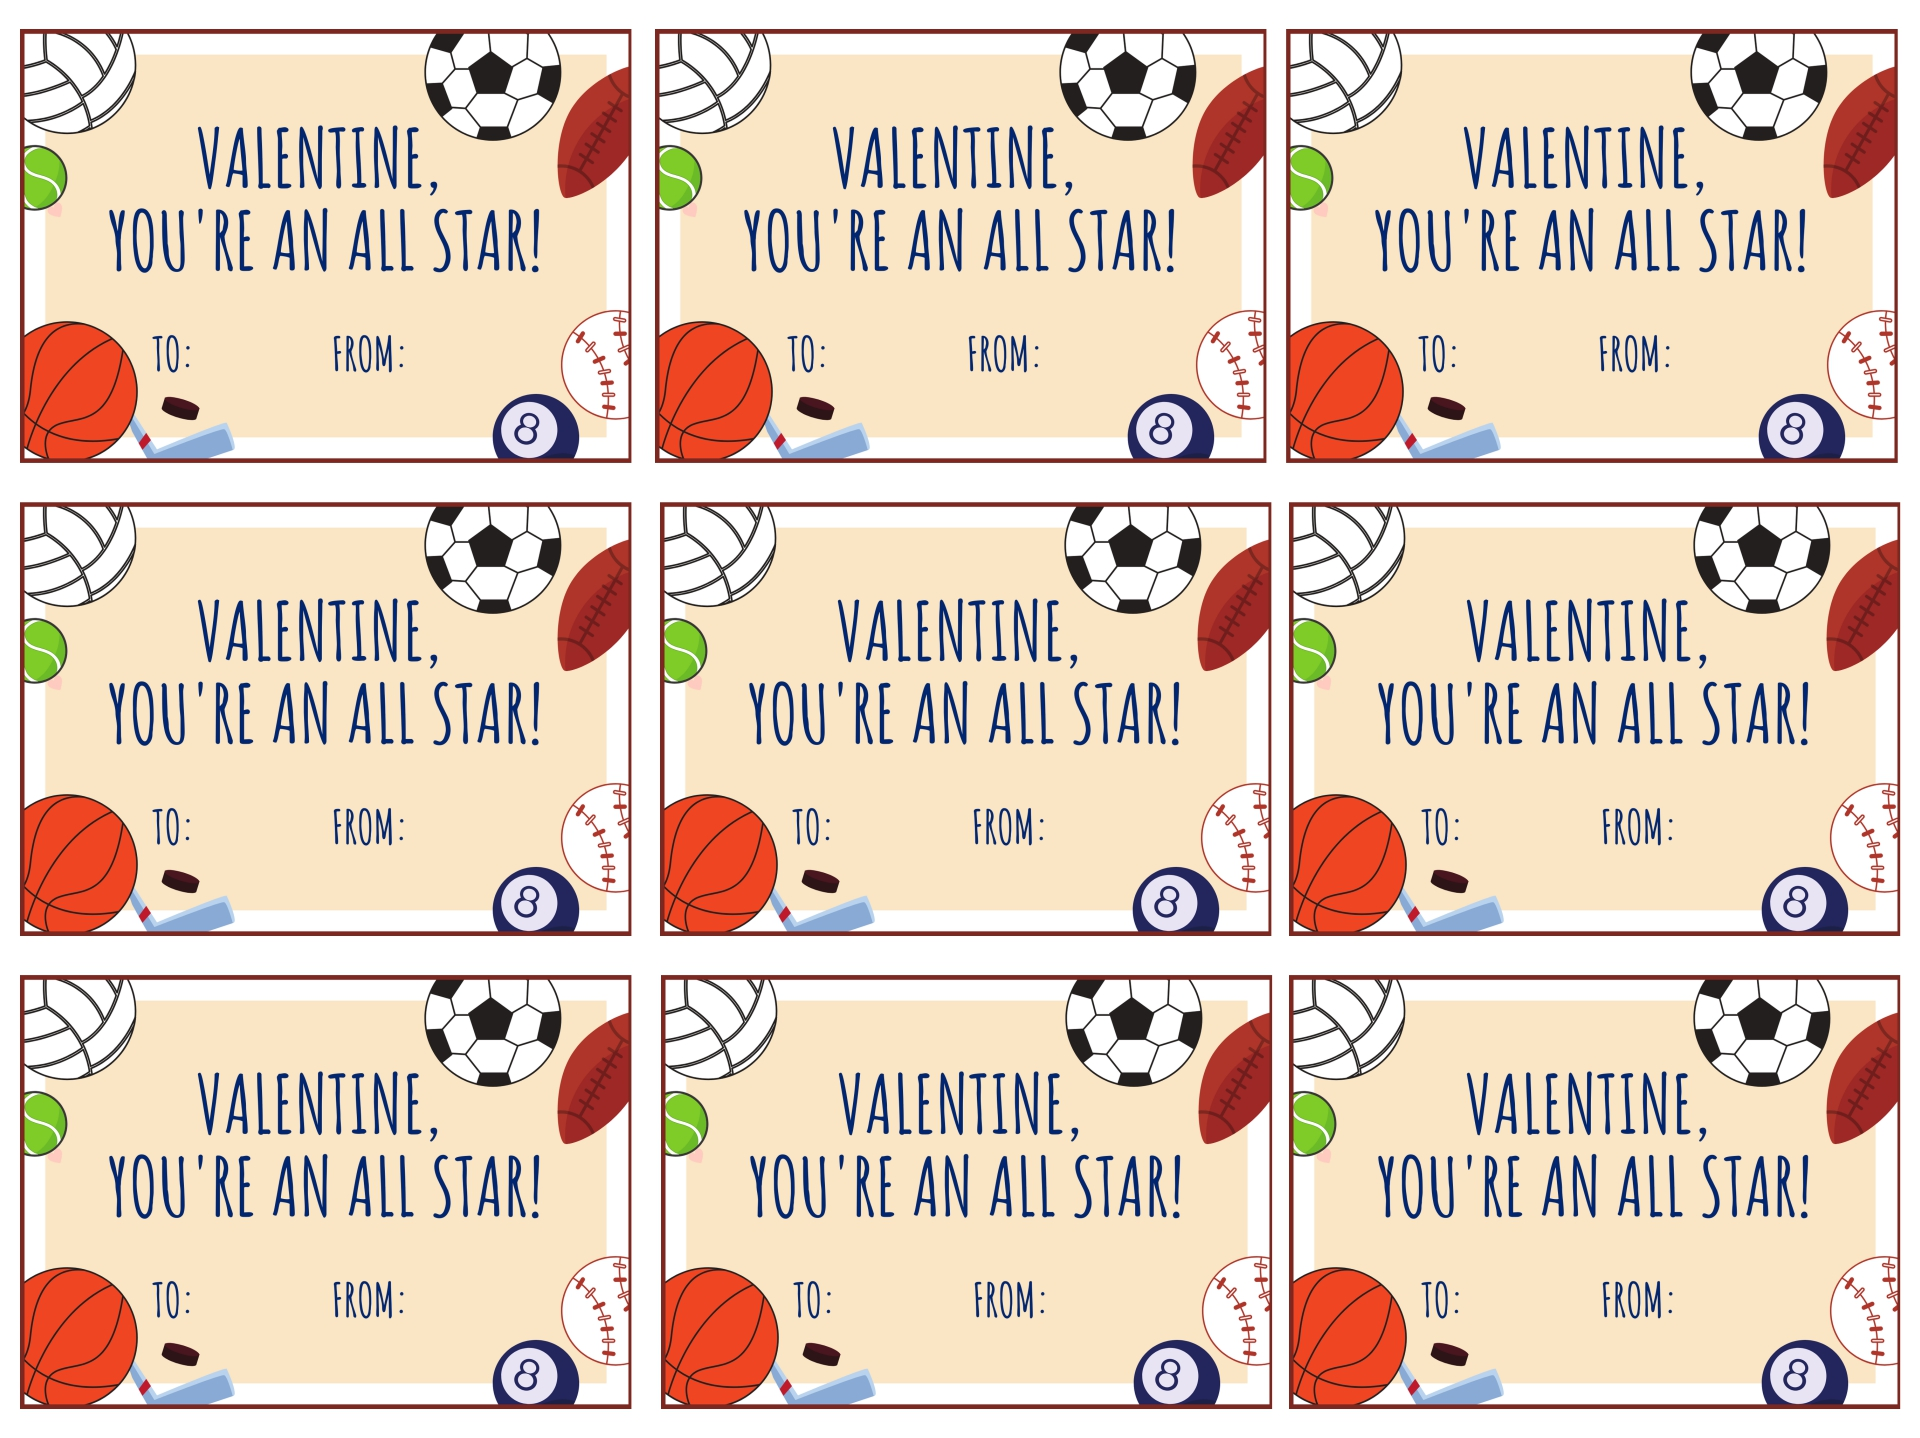 9 Images of Baseball Valentine's Day Cards Printable